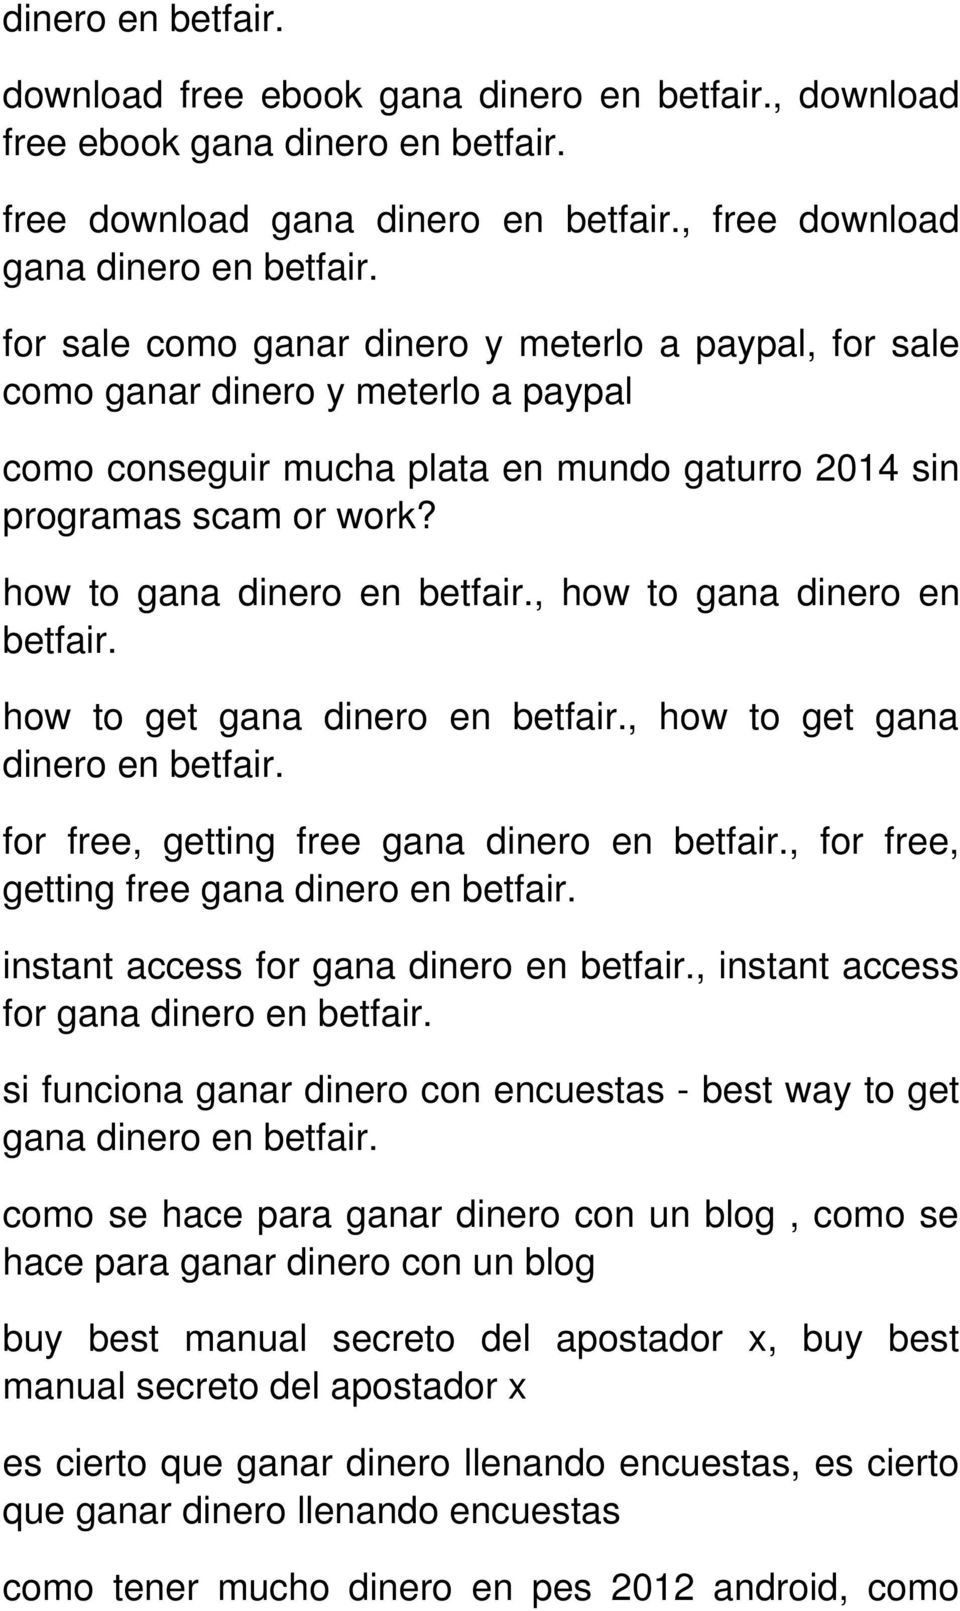 how to get gana, how to get gana for free, getting free gana, for free, getting free gana instant access for gana, instant access for gana si funciona ganar dinero con encuestas - best way to get